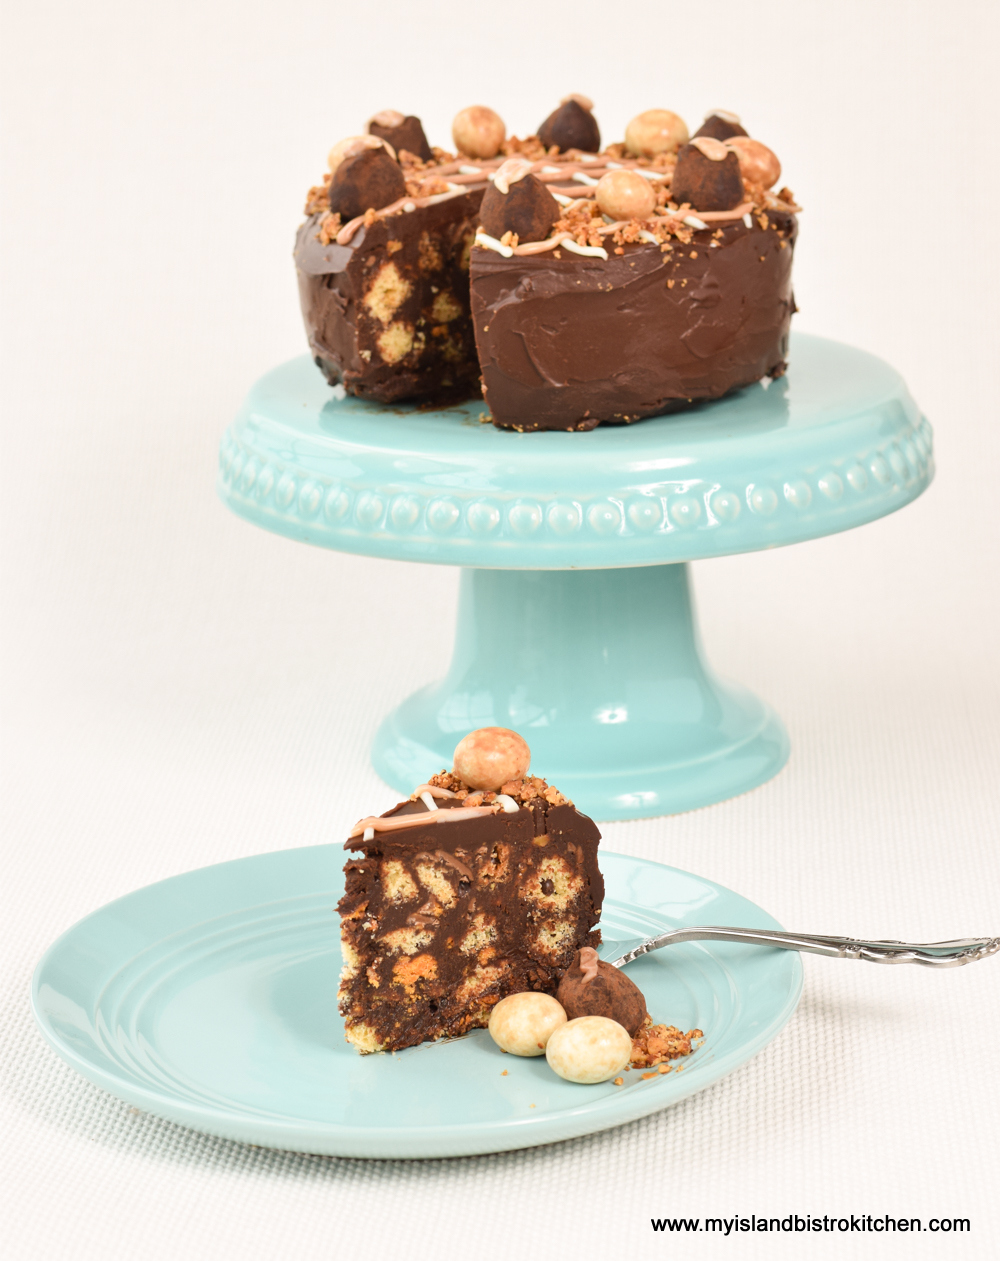 Chocolate Biscuit Cake